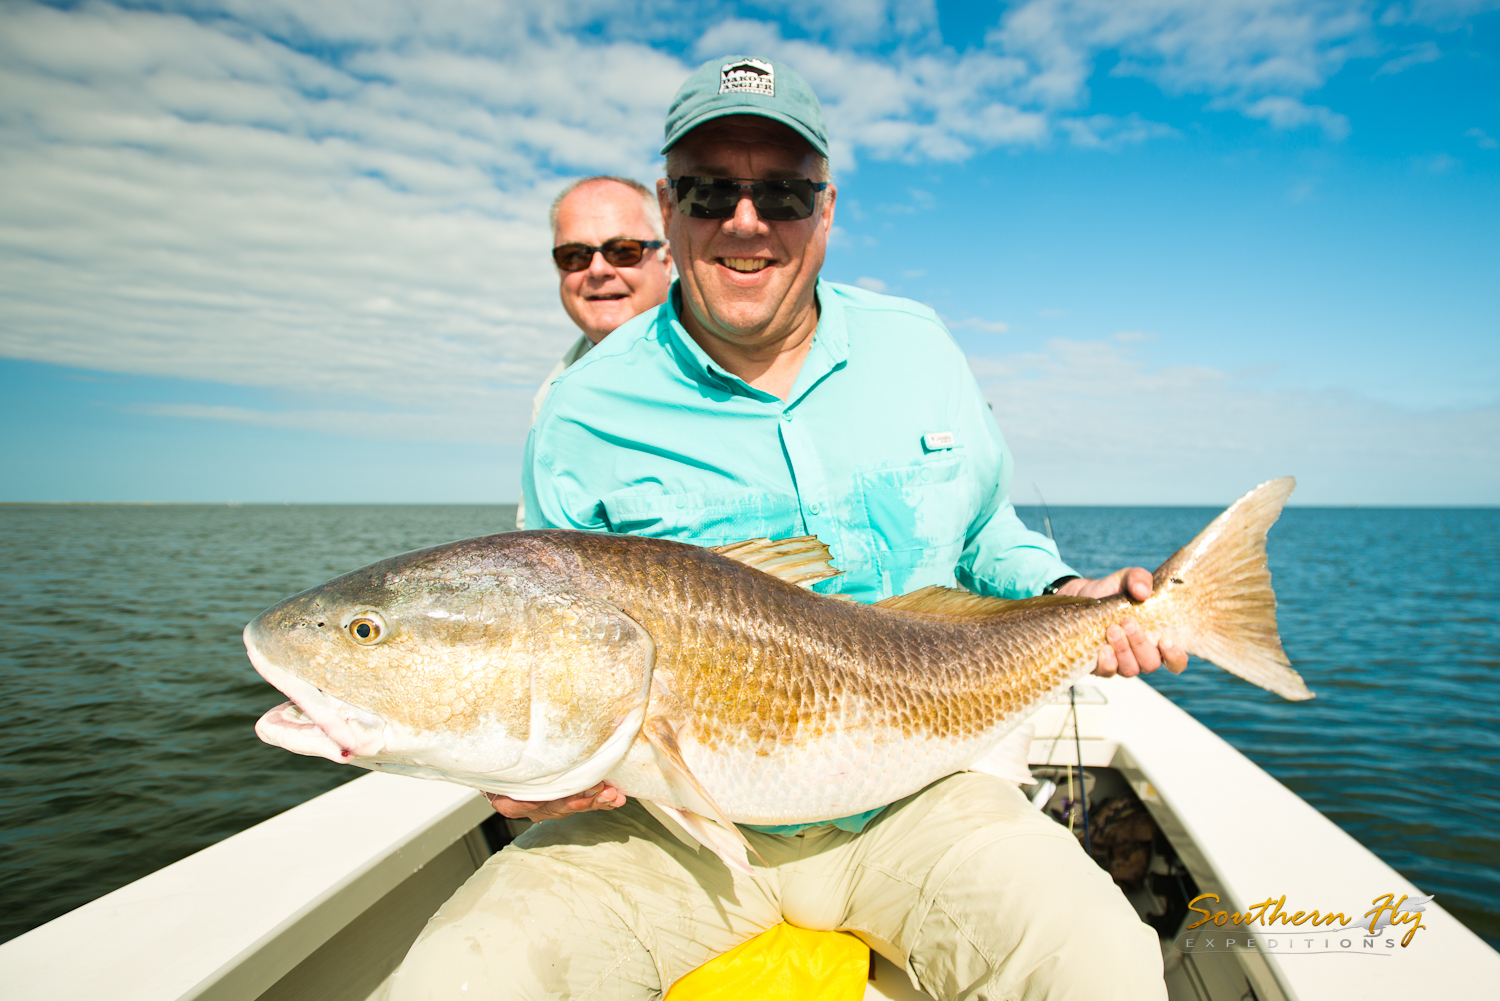 Top Fly Fishing Guide Hopedale La Southern Fly Expeditions